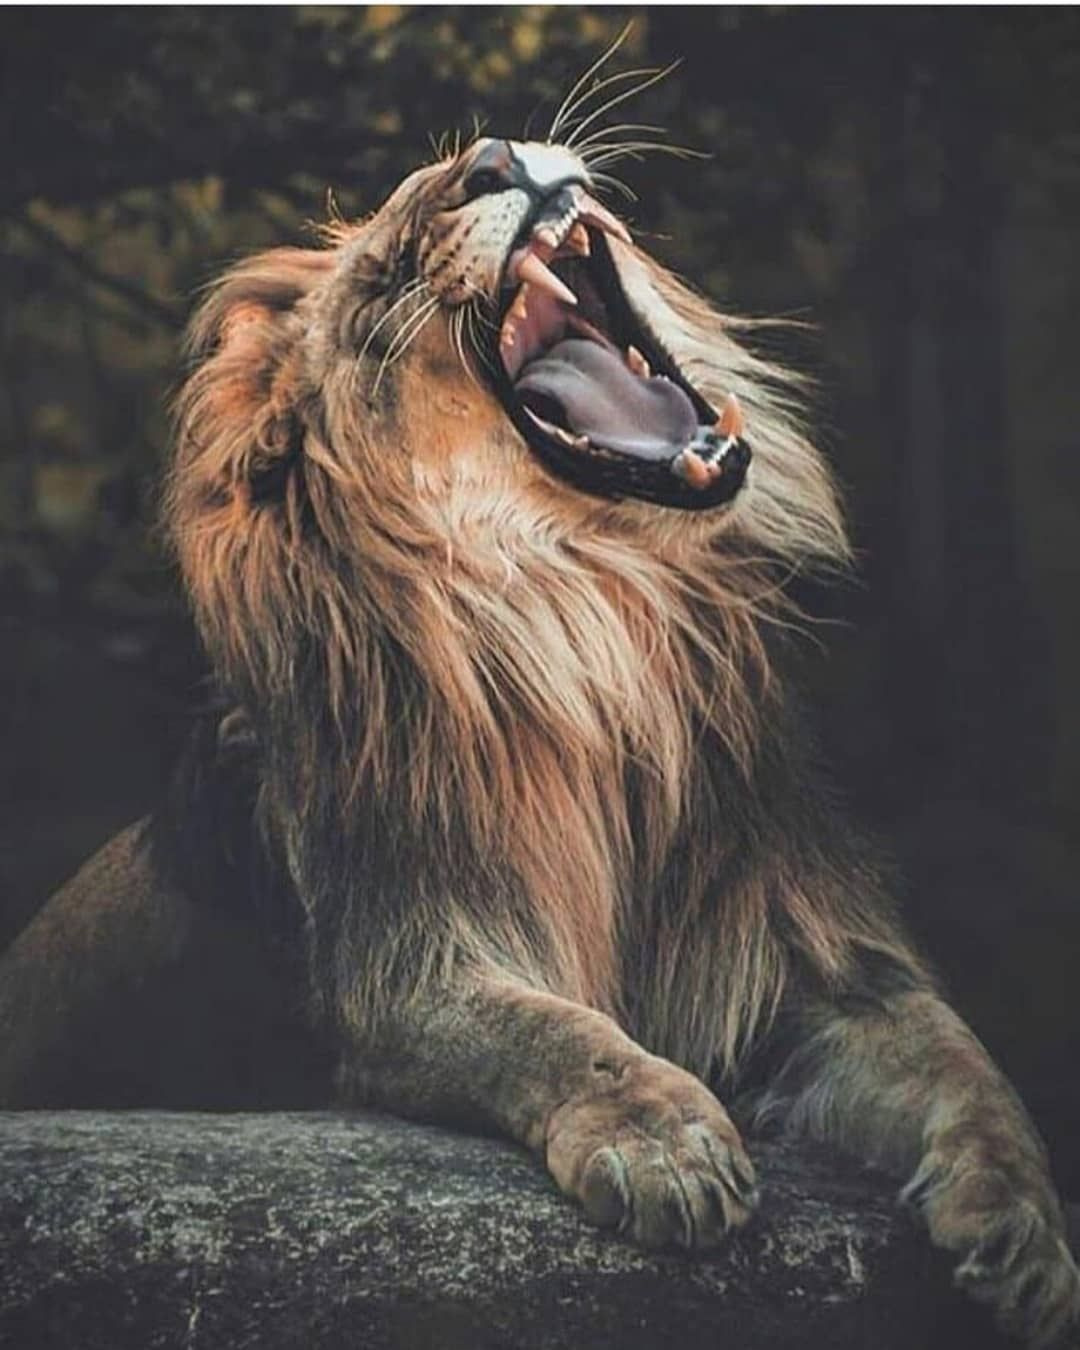 Did #you #know #that, #Lions #are #carnivorous, #and #they #usually #hunt #big #animals. #A #female #lion #needs #approximately #5 #kilograms #of #meat, #and #a #male #eats #about #7 #kilograms #of #meat #every #single #day #nature #theworld #world #water #sea #animals #wildanimals #earth #adorable #collors #clouds #sky #forest #wildlife #animalphotography #earthcapture #discovery #travel #traveler #lion #cat #Tap #livealifewith #to #see #the #posters!!! #: #animals.royal #livealifewith #for #mo